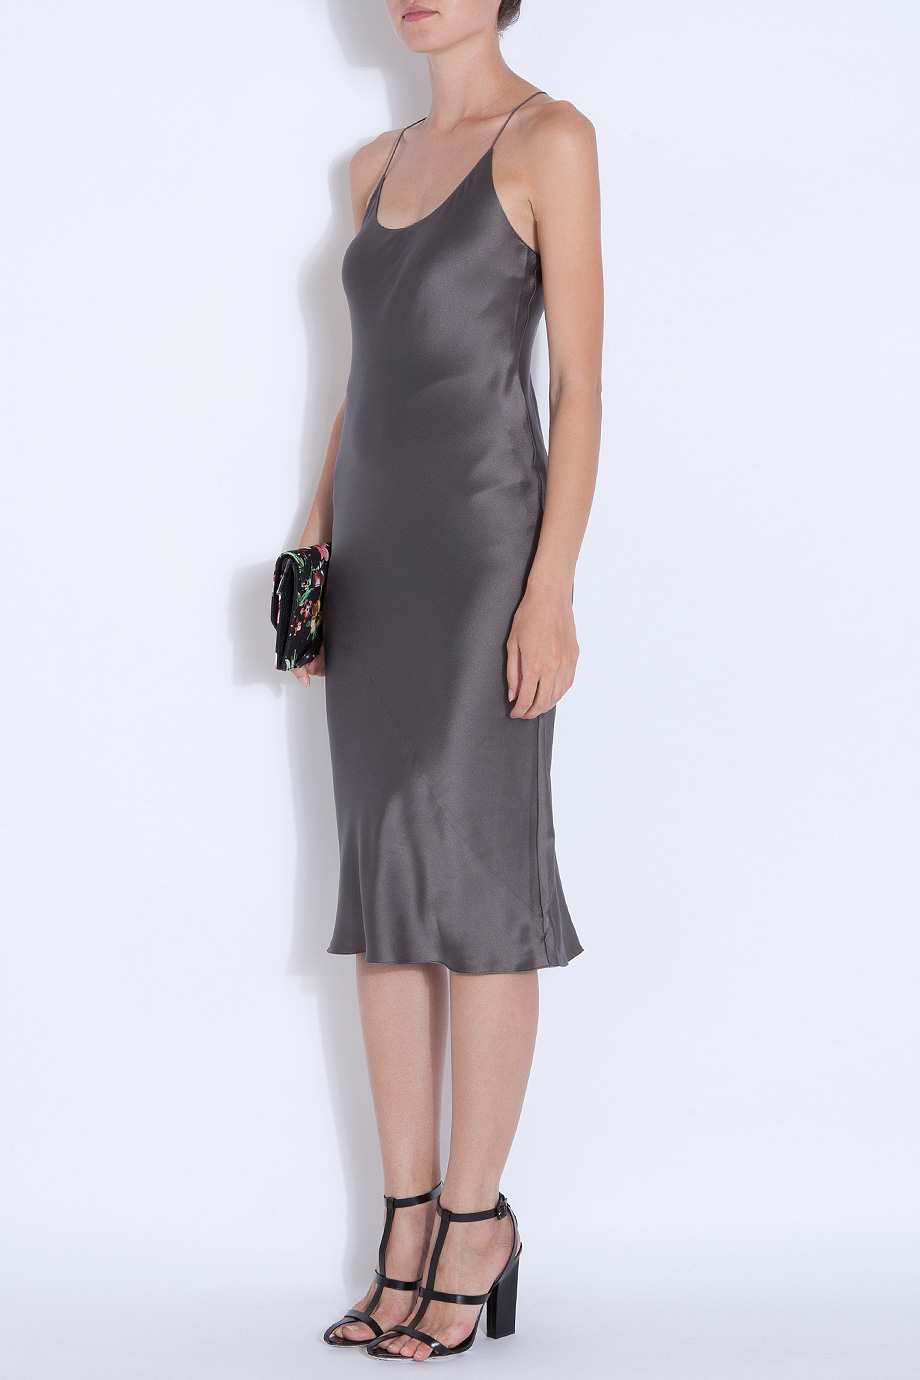 Slip Dress Picture Collection  Dressed Up Girl